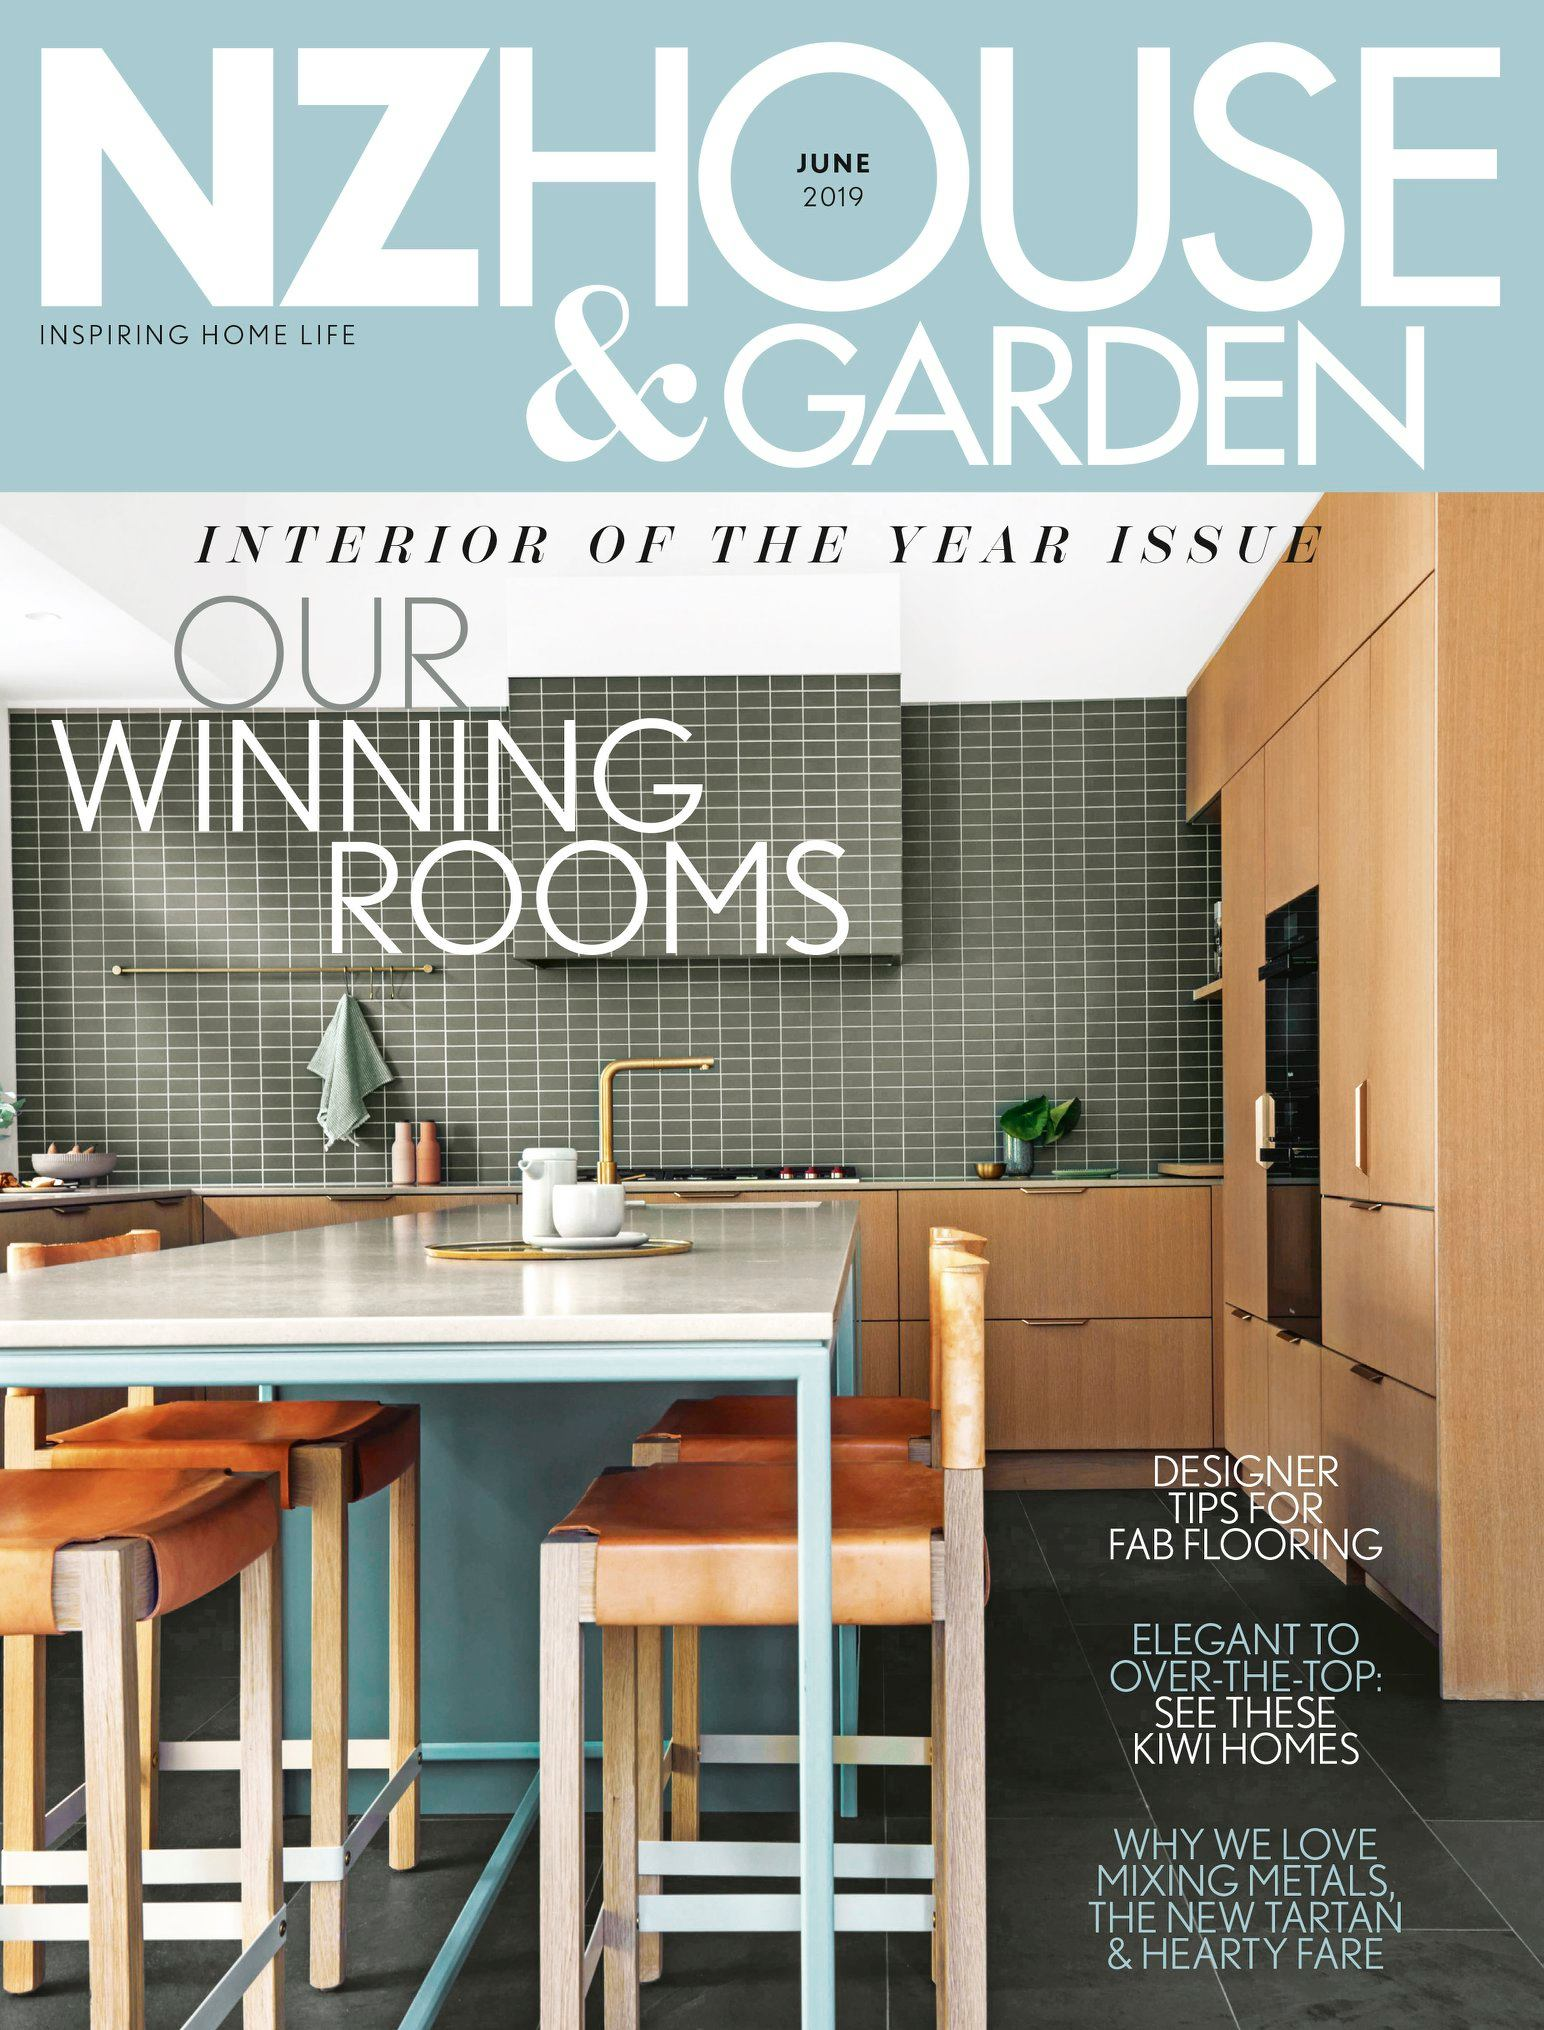 NZ HOUSE & GARDEN JUNE 2019